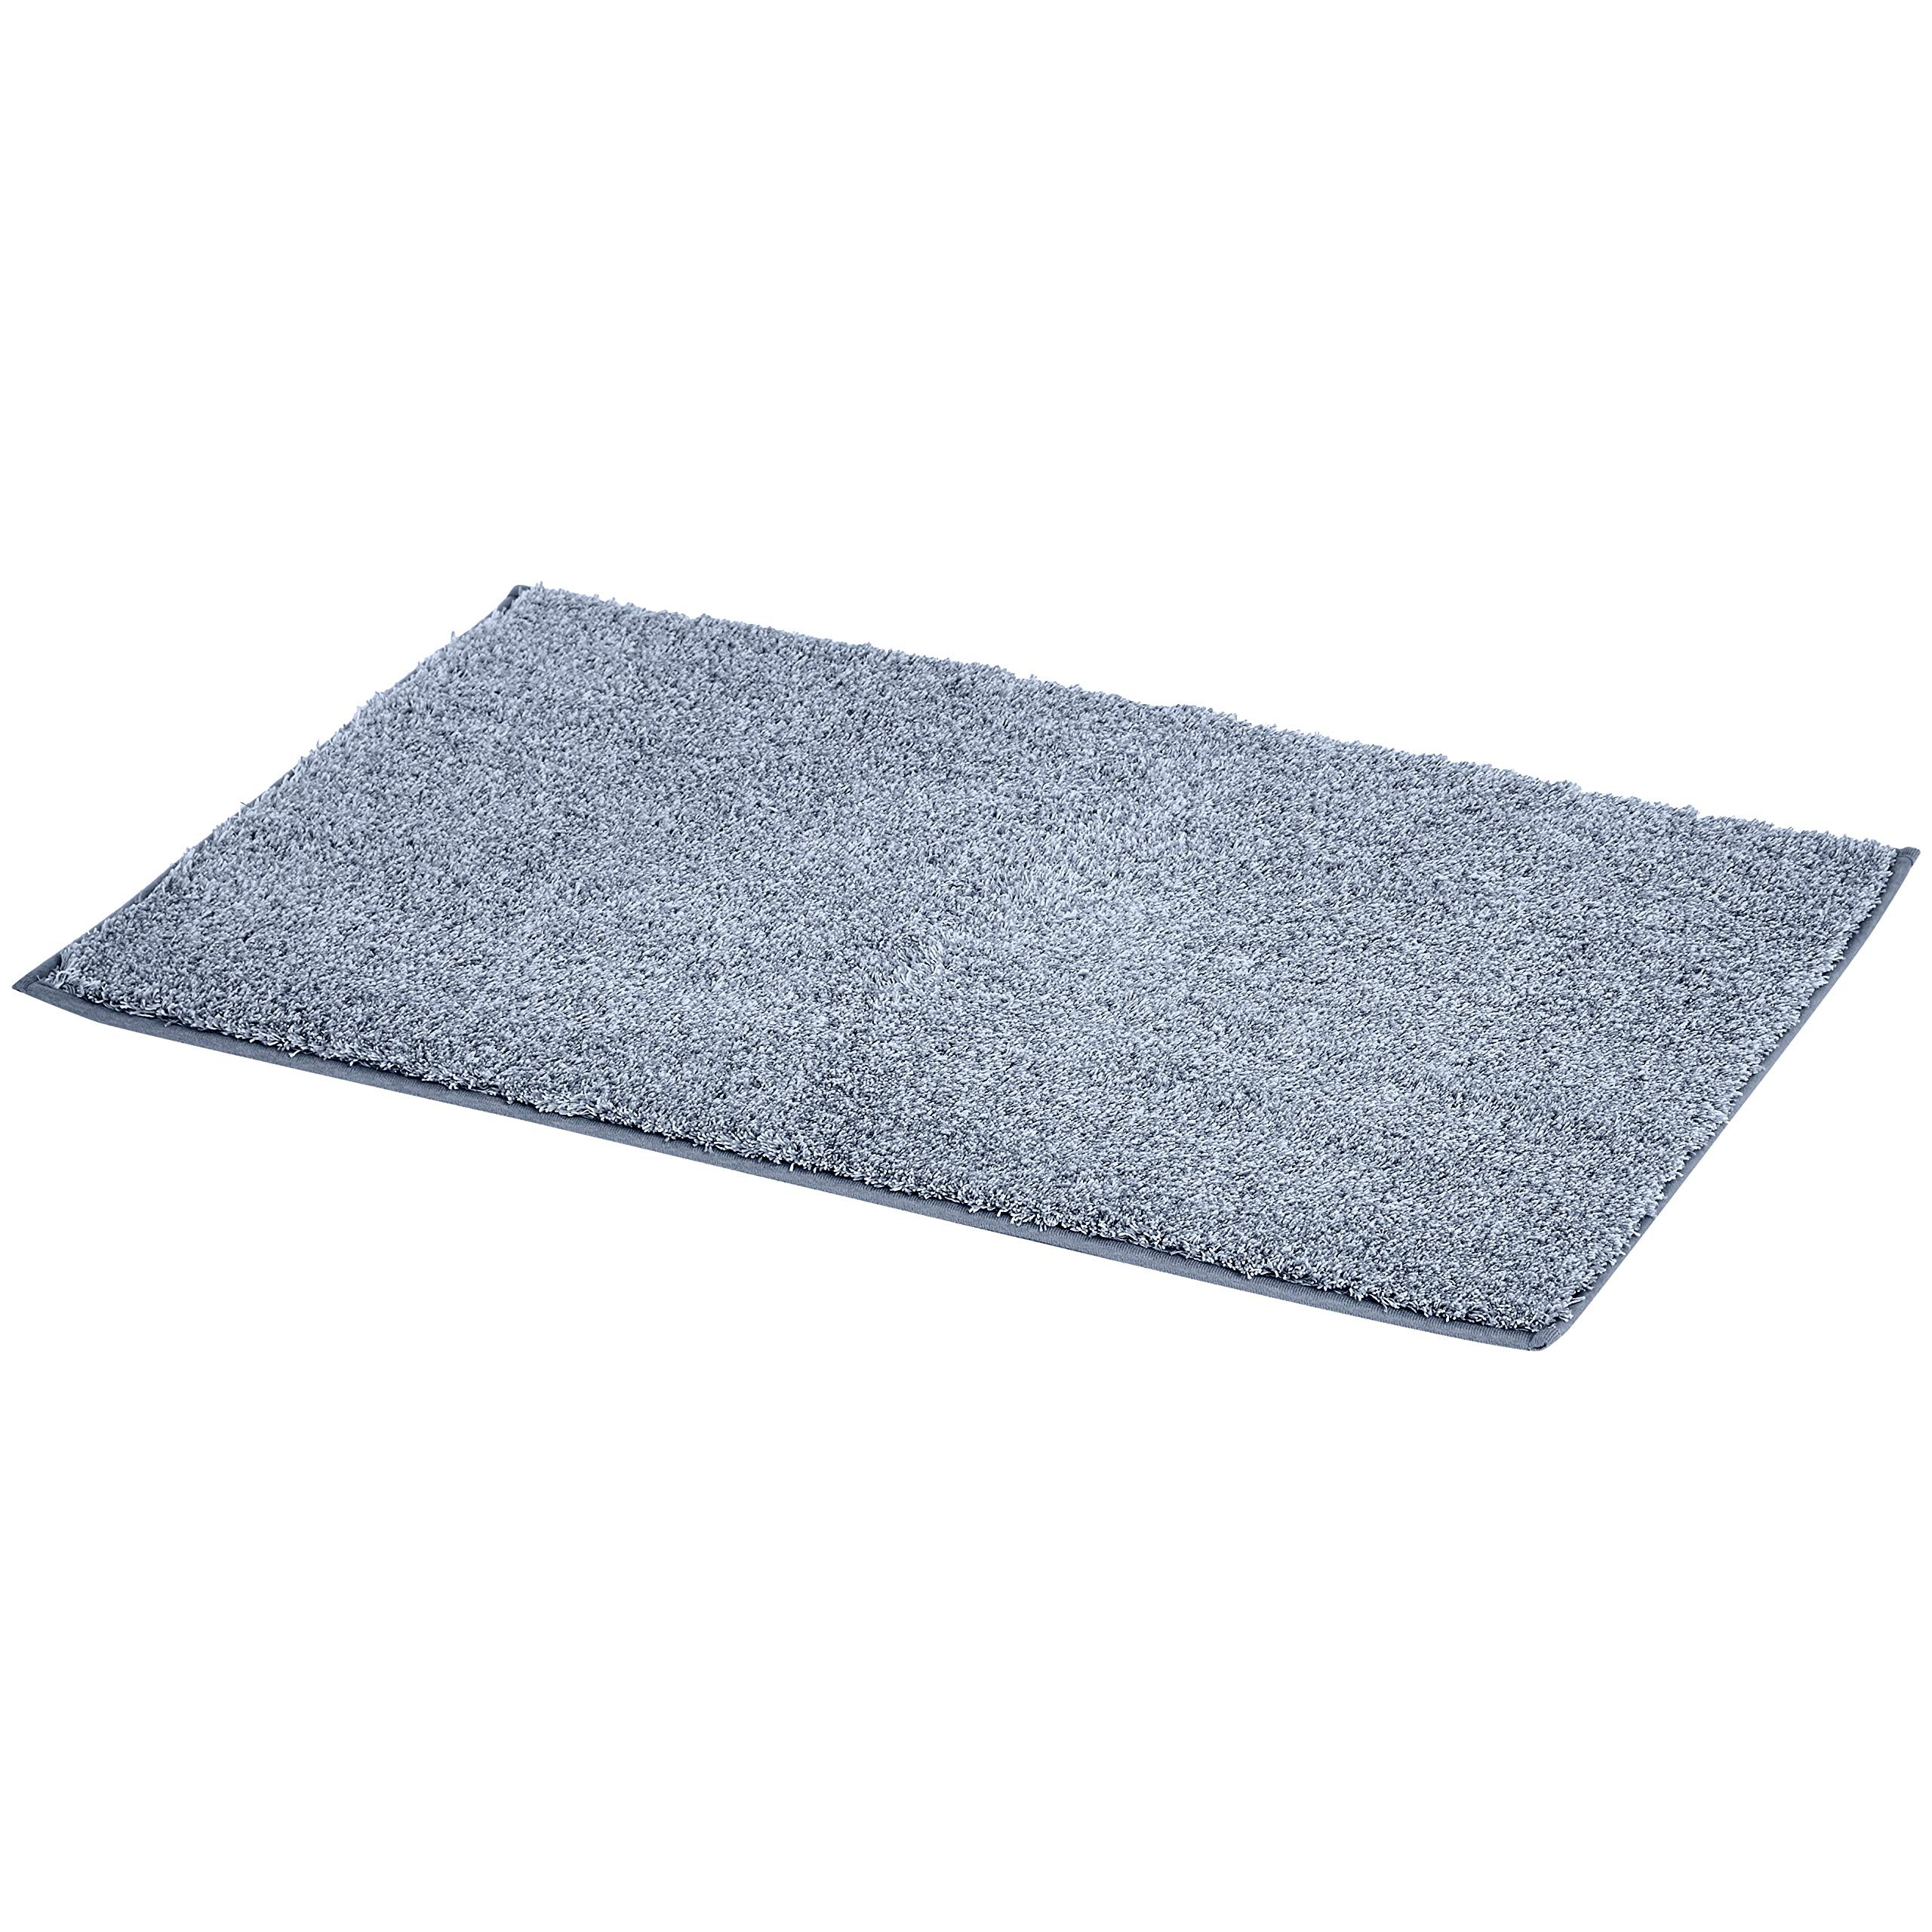 AmazonBasics Plush Melange Sculpted Bath Mat - Light Blue, 3-Size Set